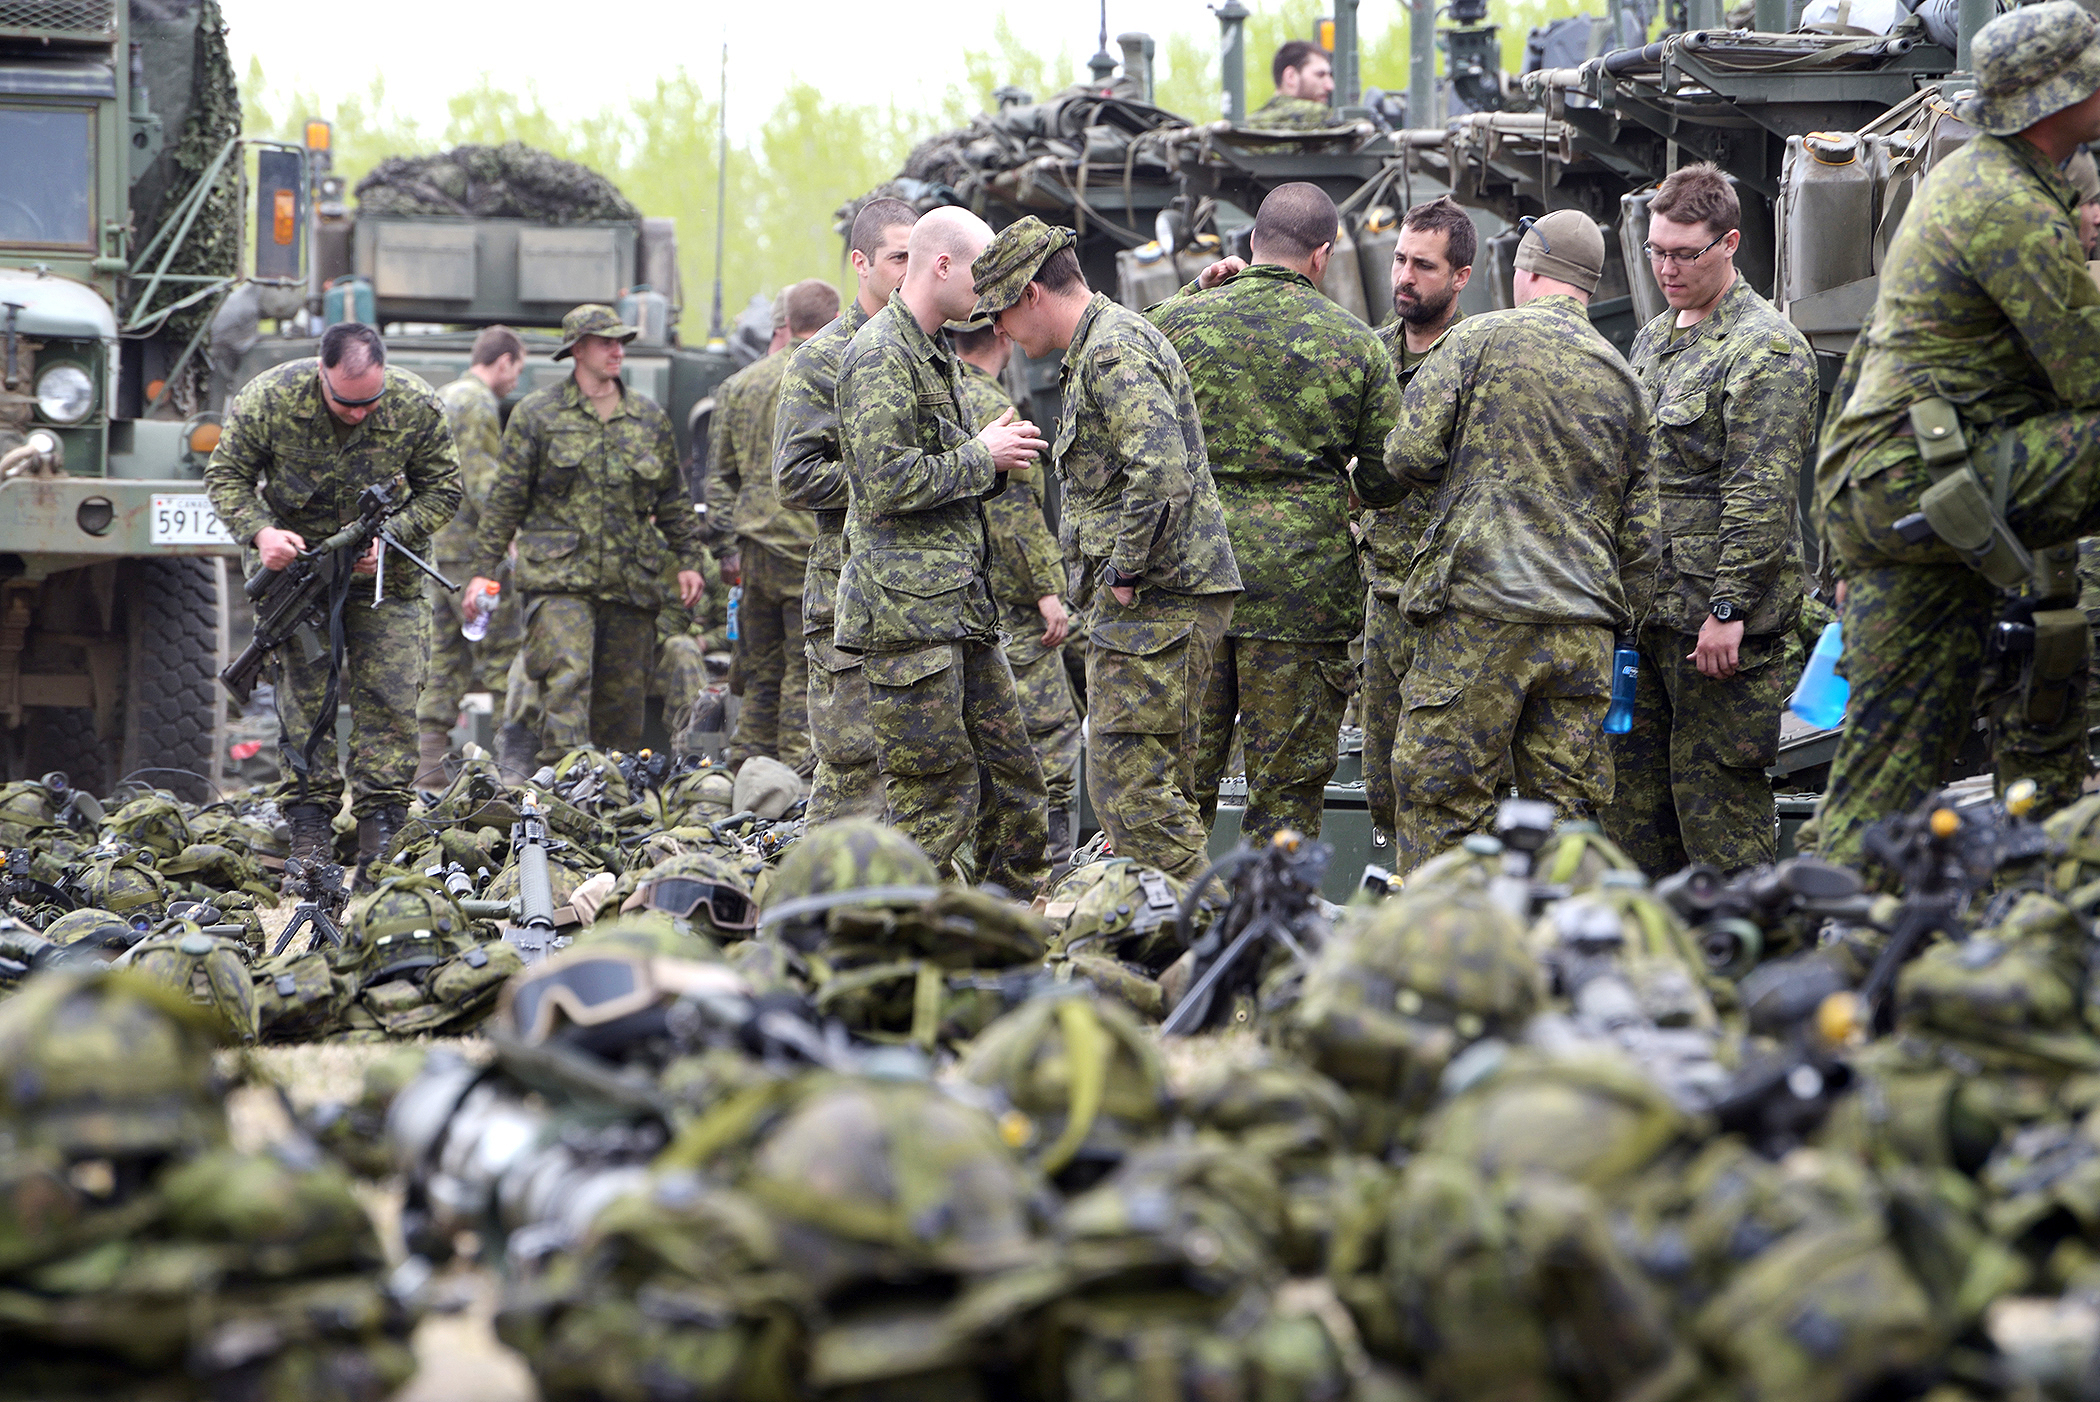 """Canadian soldiers from the Royal 22nd Regiment check their equipment during Ex MAPLE RESOLVE. The huge training exercise is played out over 62,000 hectares at CFB Wainwright, Alberta. During the exercise, the Royal 22nd Regiment retook land that had been """"overrun"""" by enemy forces, in an elaborate narrative that included the use of mock villages, as well as soldiers and civilian actors portraying refugees, village leaders, and military officials. (Sgt Dan Shinouinard, DND)"""